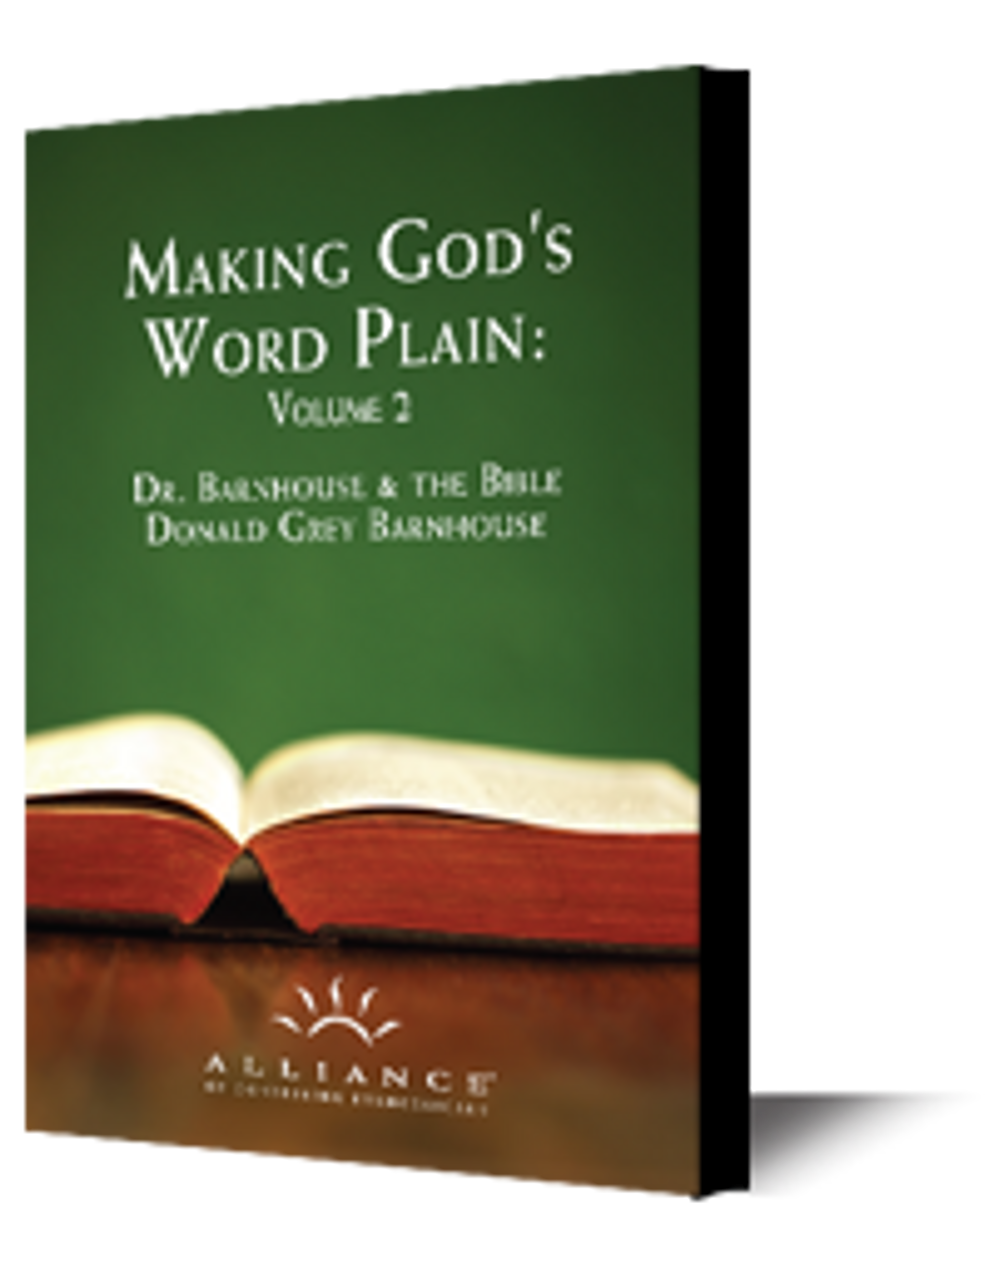 Making God's Word Plain, Volume 2 (CD Set)